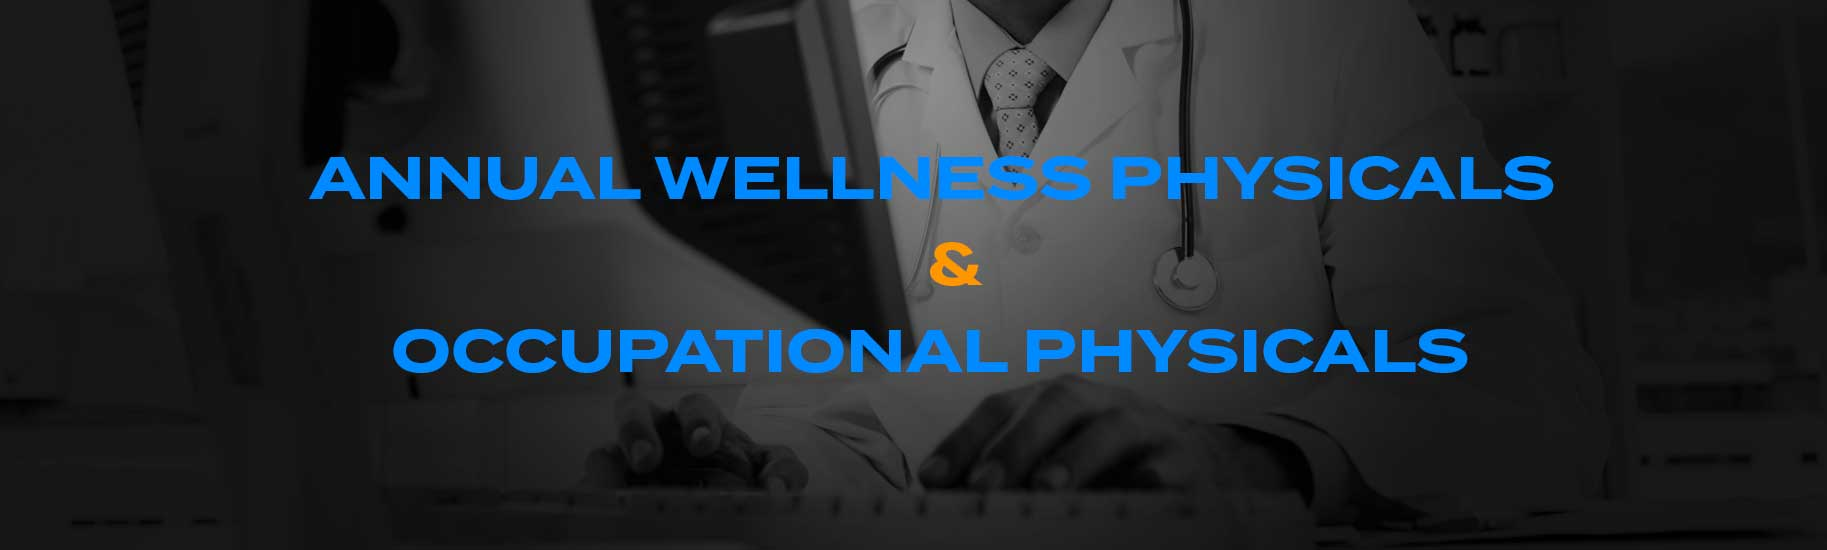 occupational physicals bay city tx